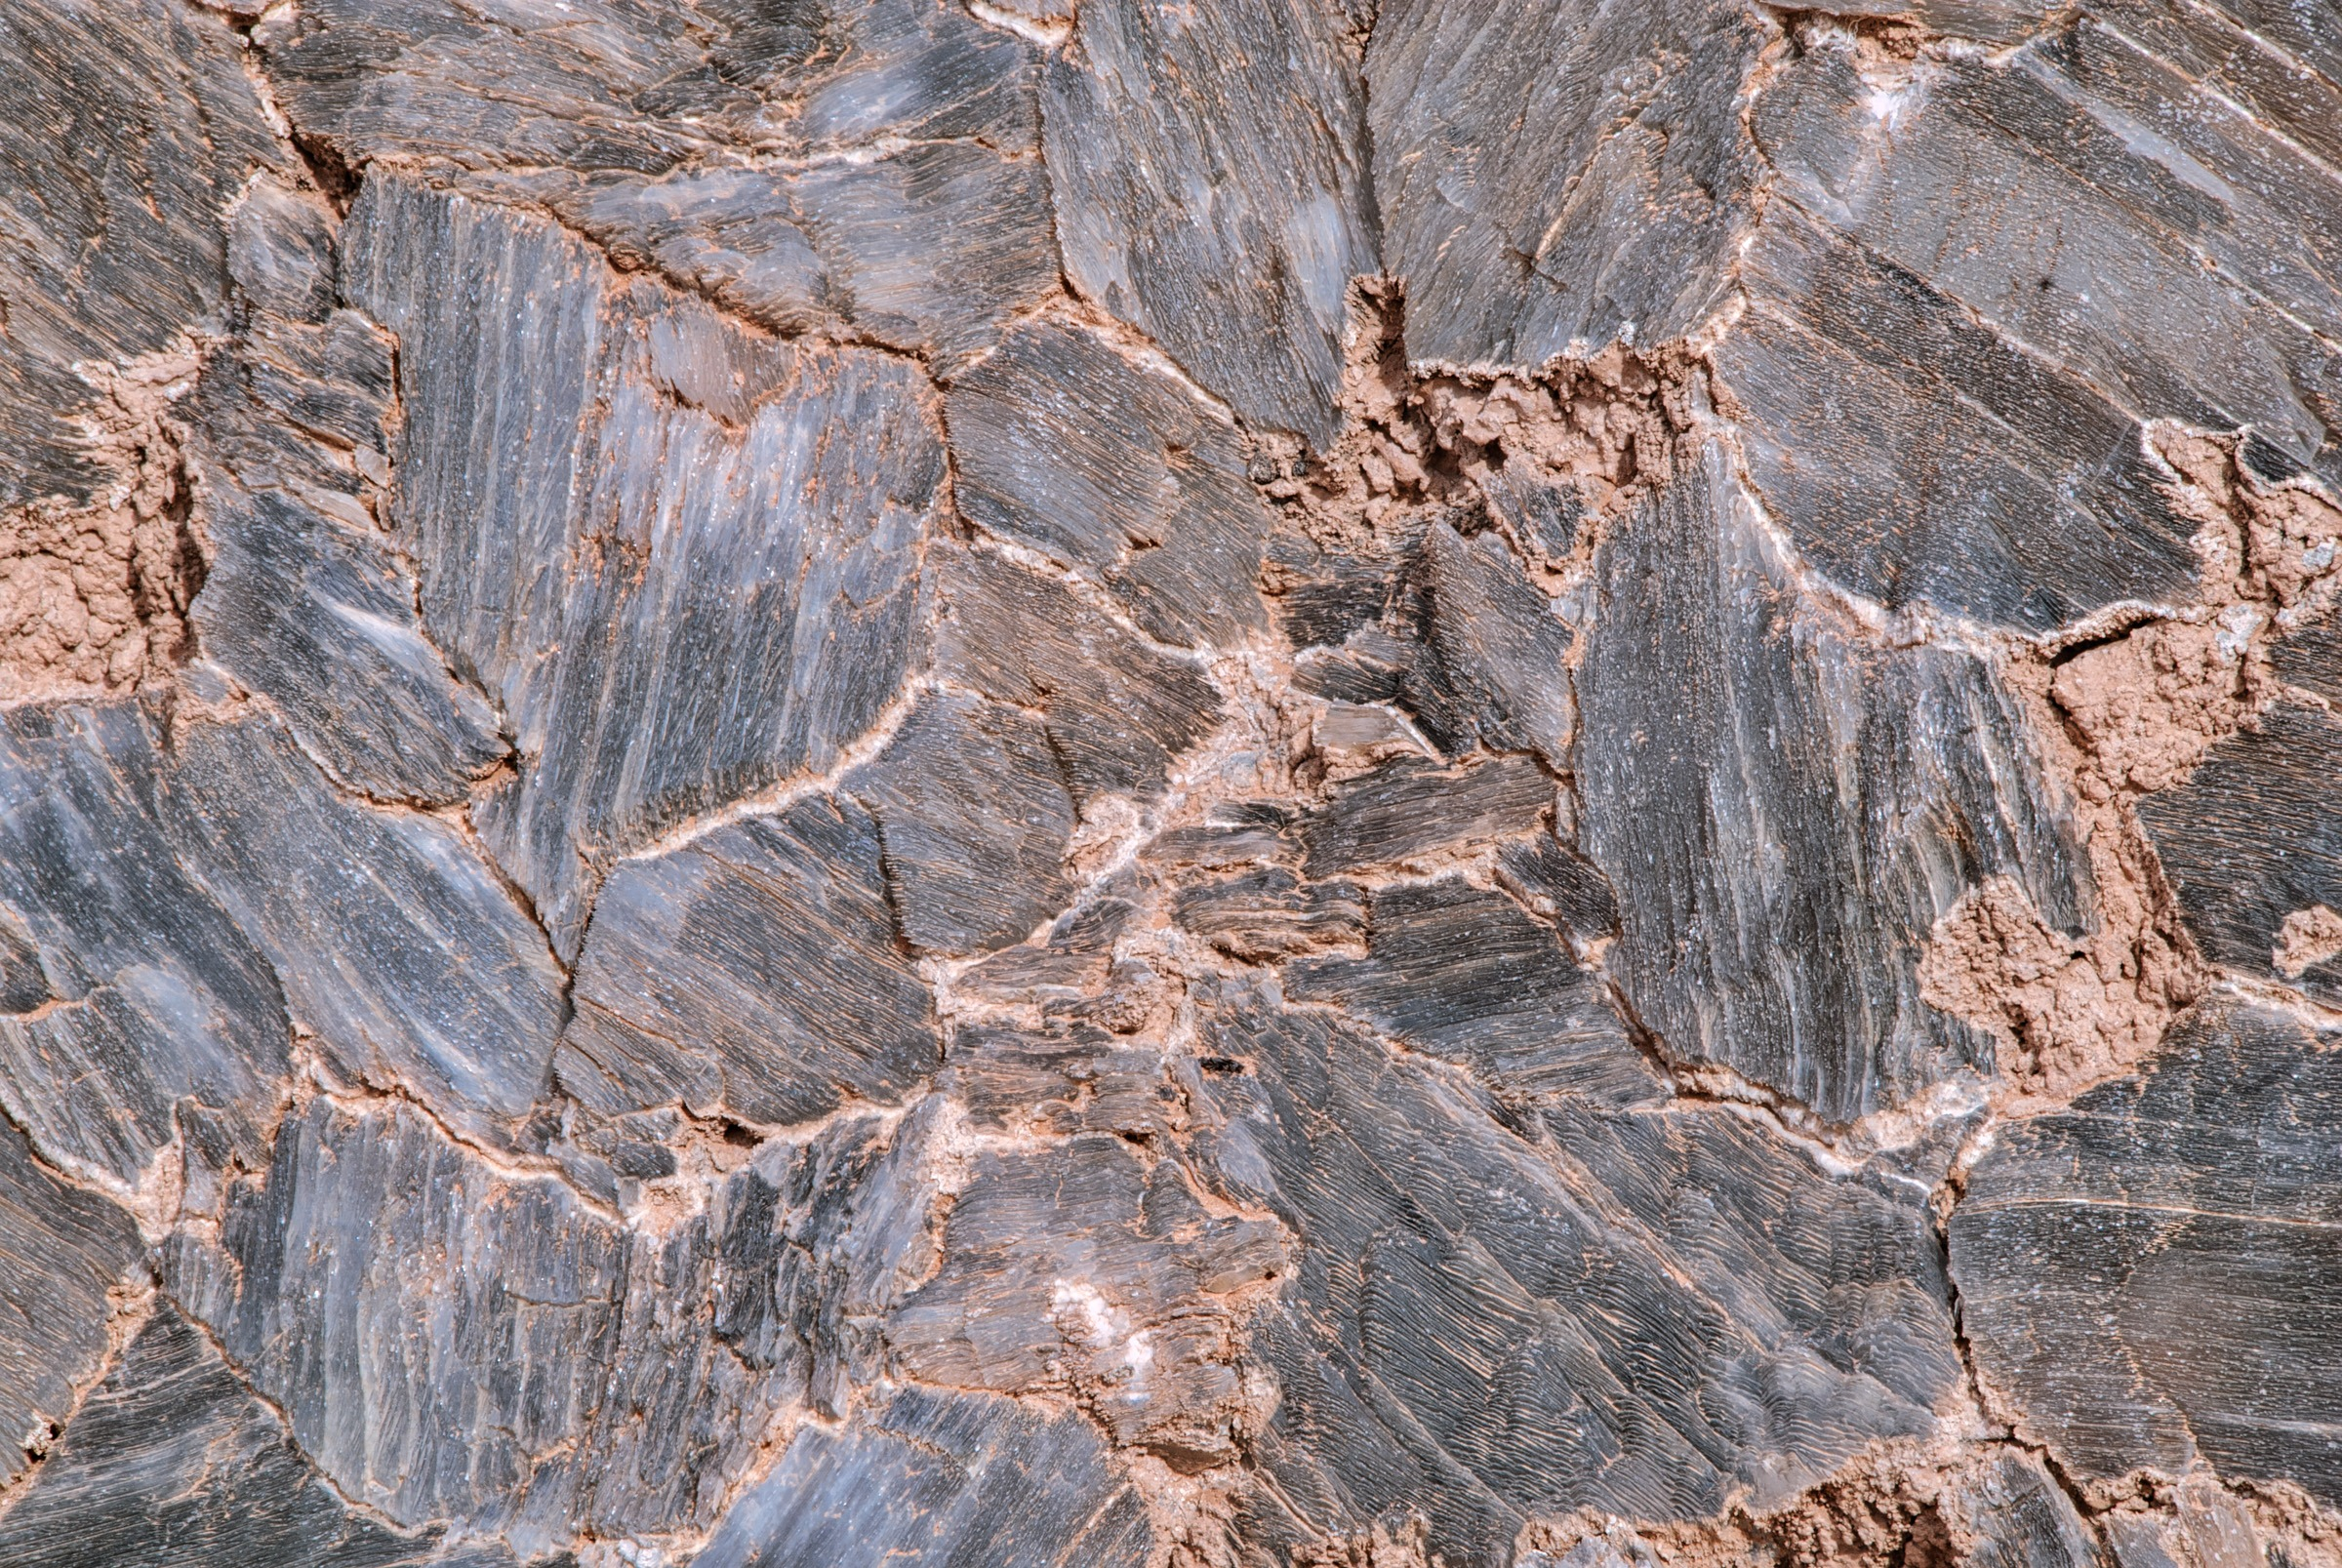 This is a close-up view of large gypsum (selenite) crystals that make up the oddity called Glass Mountain. Class Mountain is located in Cathedral Valley of Capitol Reef National Park in Utah.